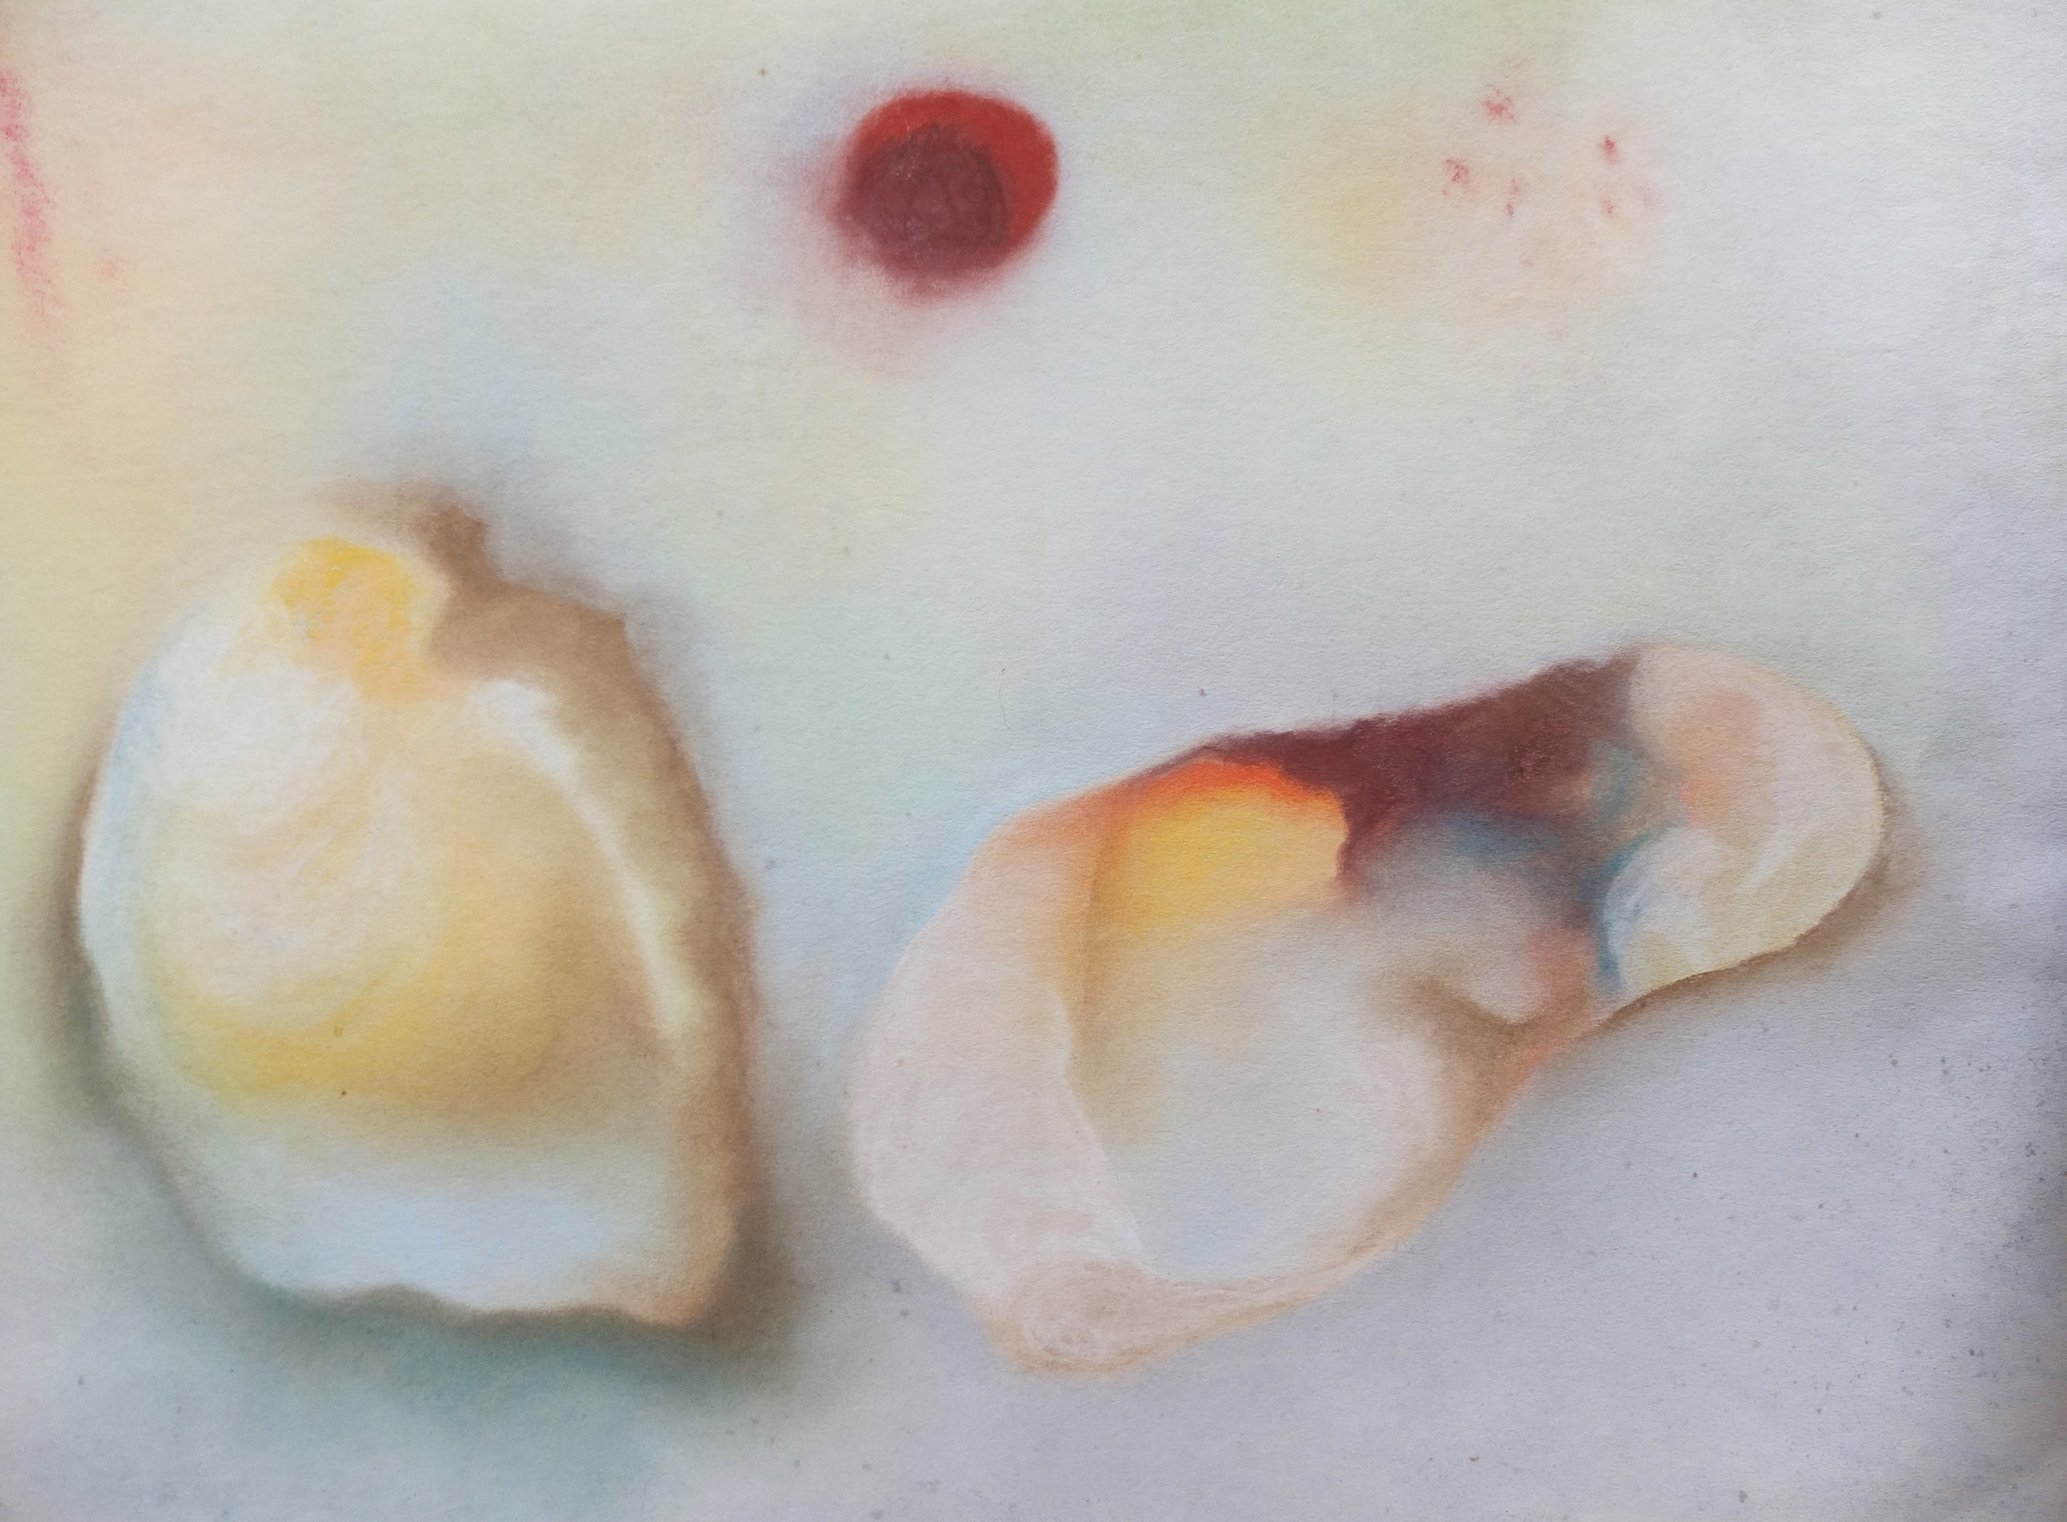 Pale Little Shells by Alison Gracie